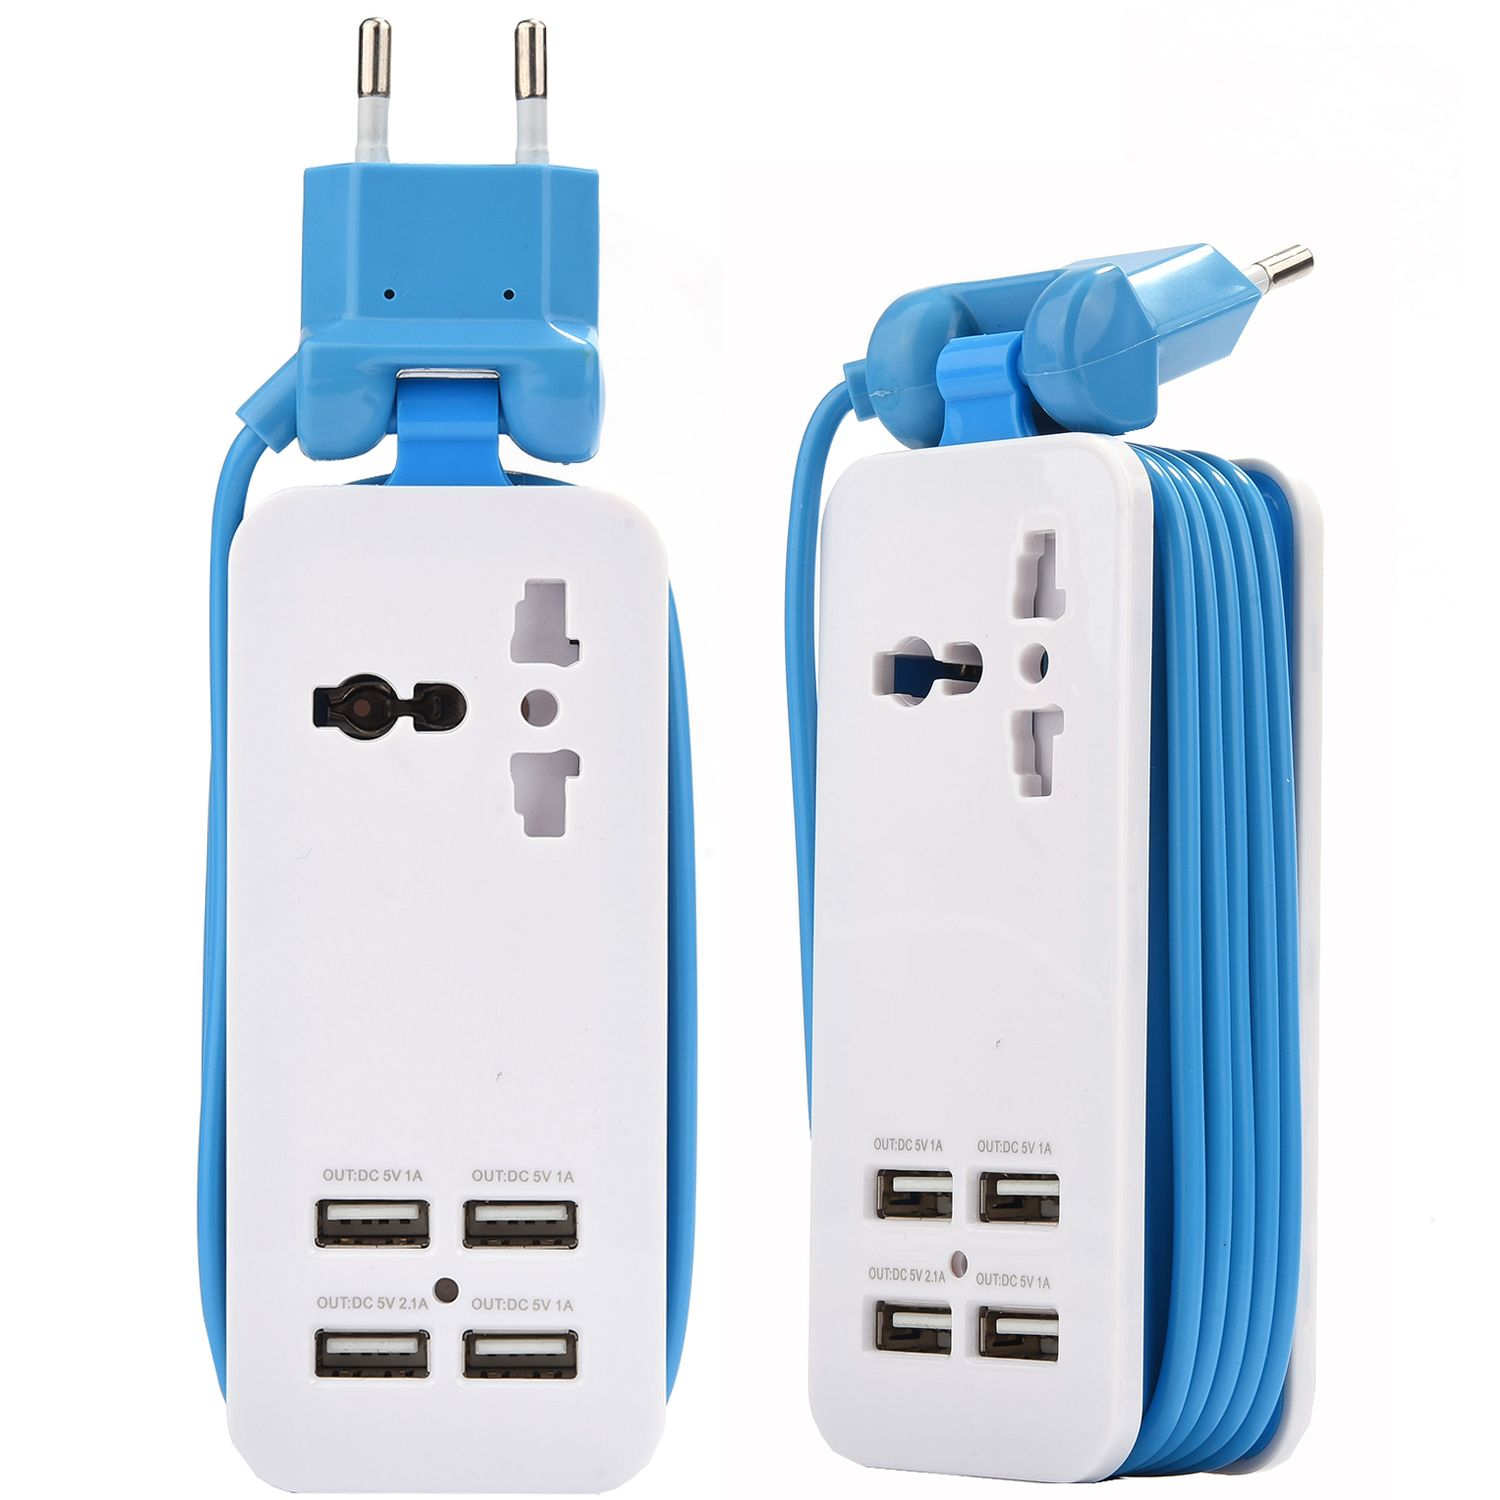 Image result for portable charging station with 4 usb ports